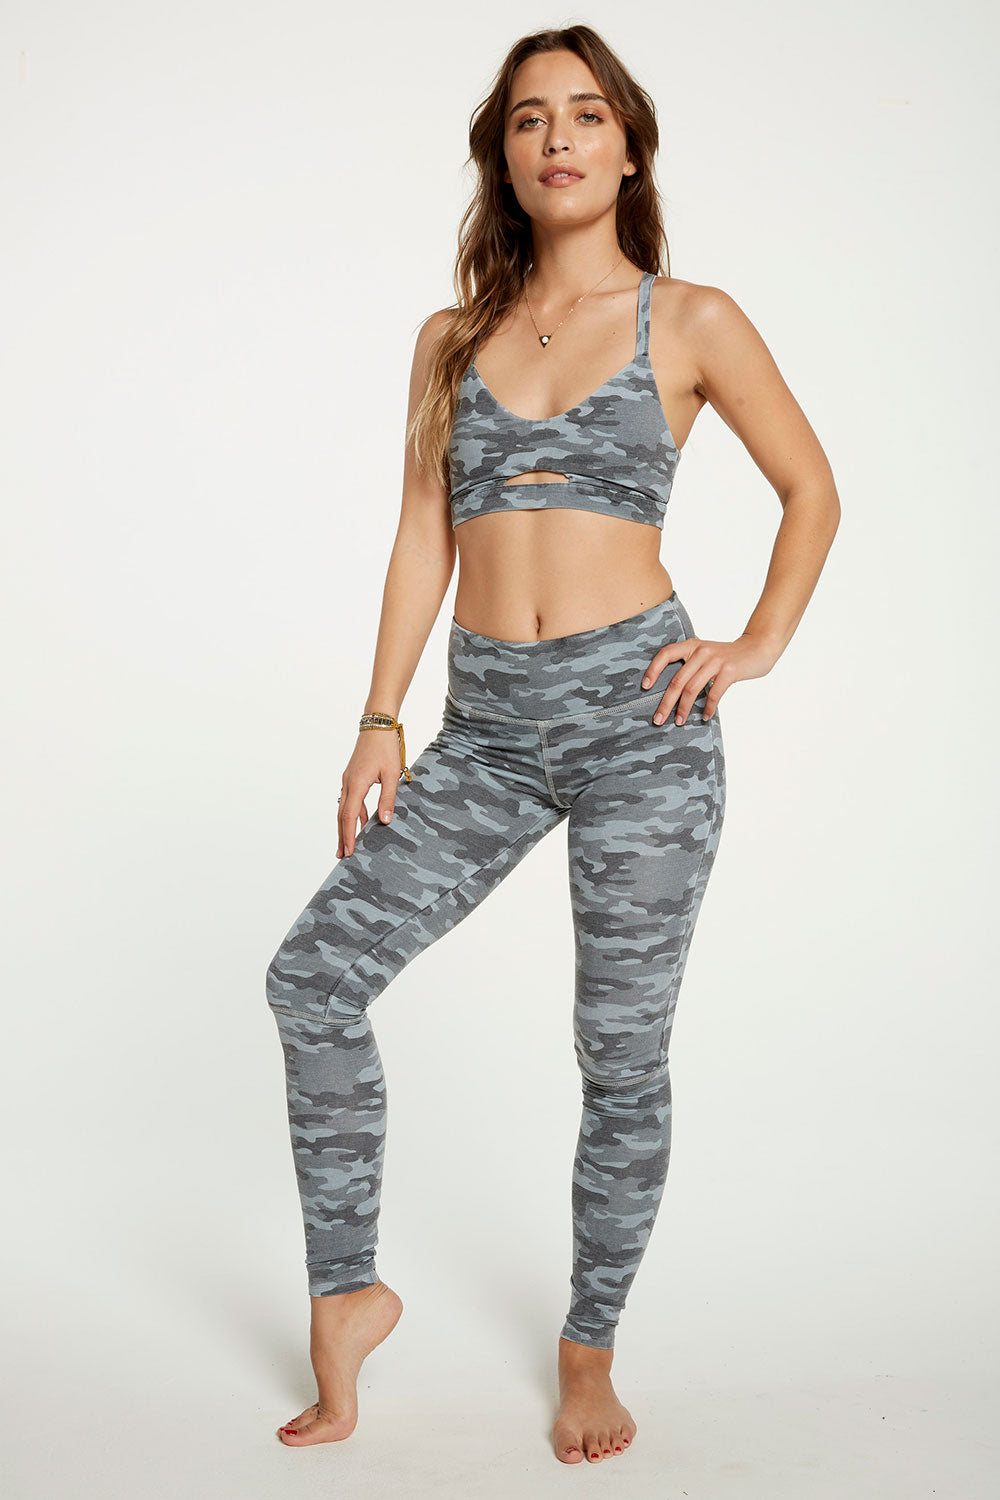 Quadrablend Vented Racerback Bralette WOMENS chaserbrand4.myshopify.com